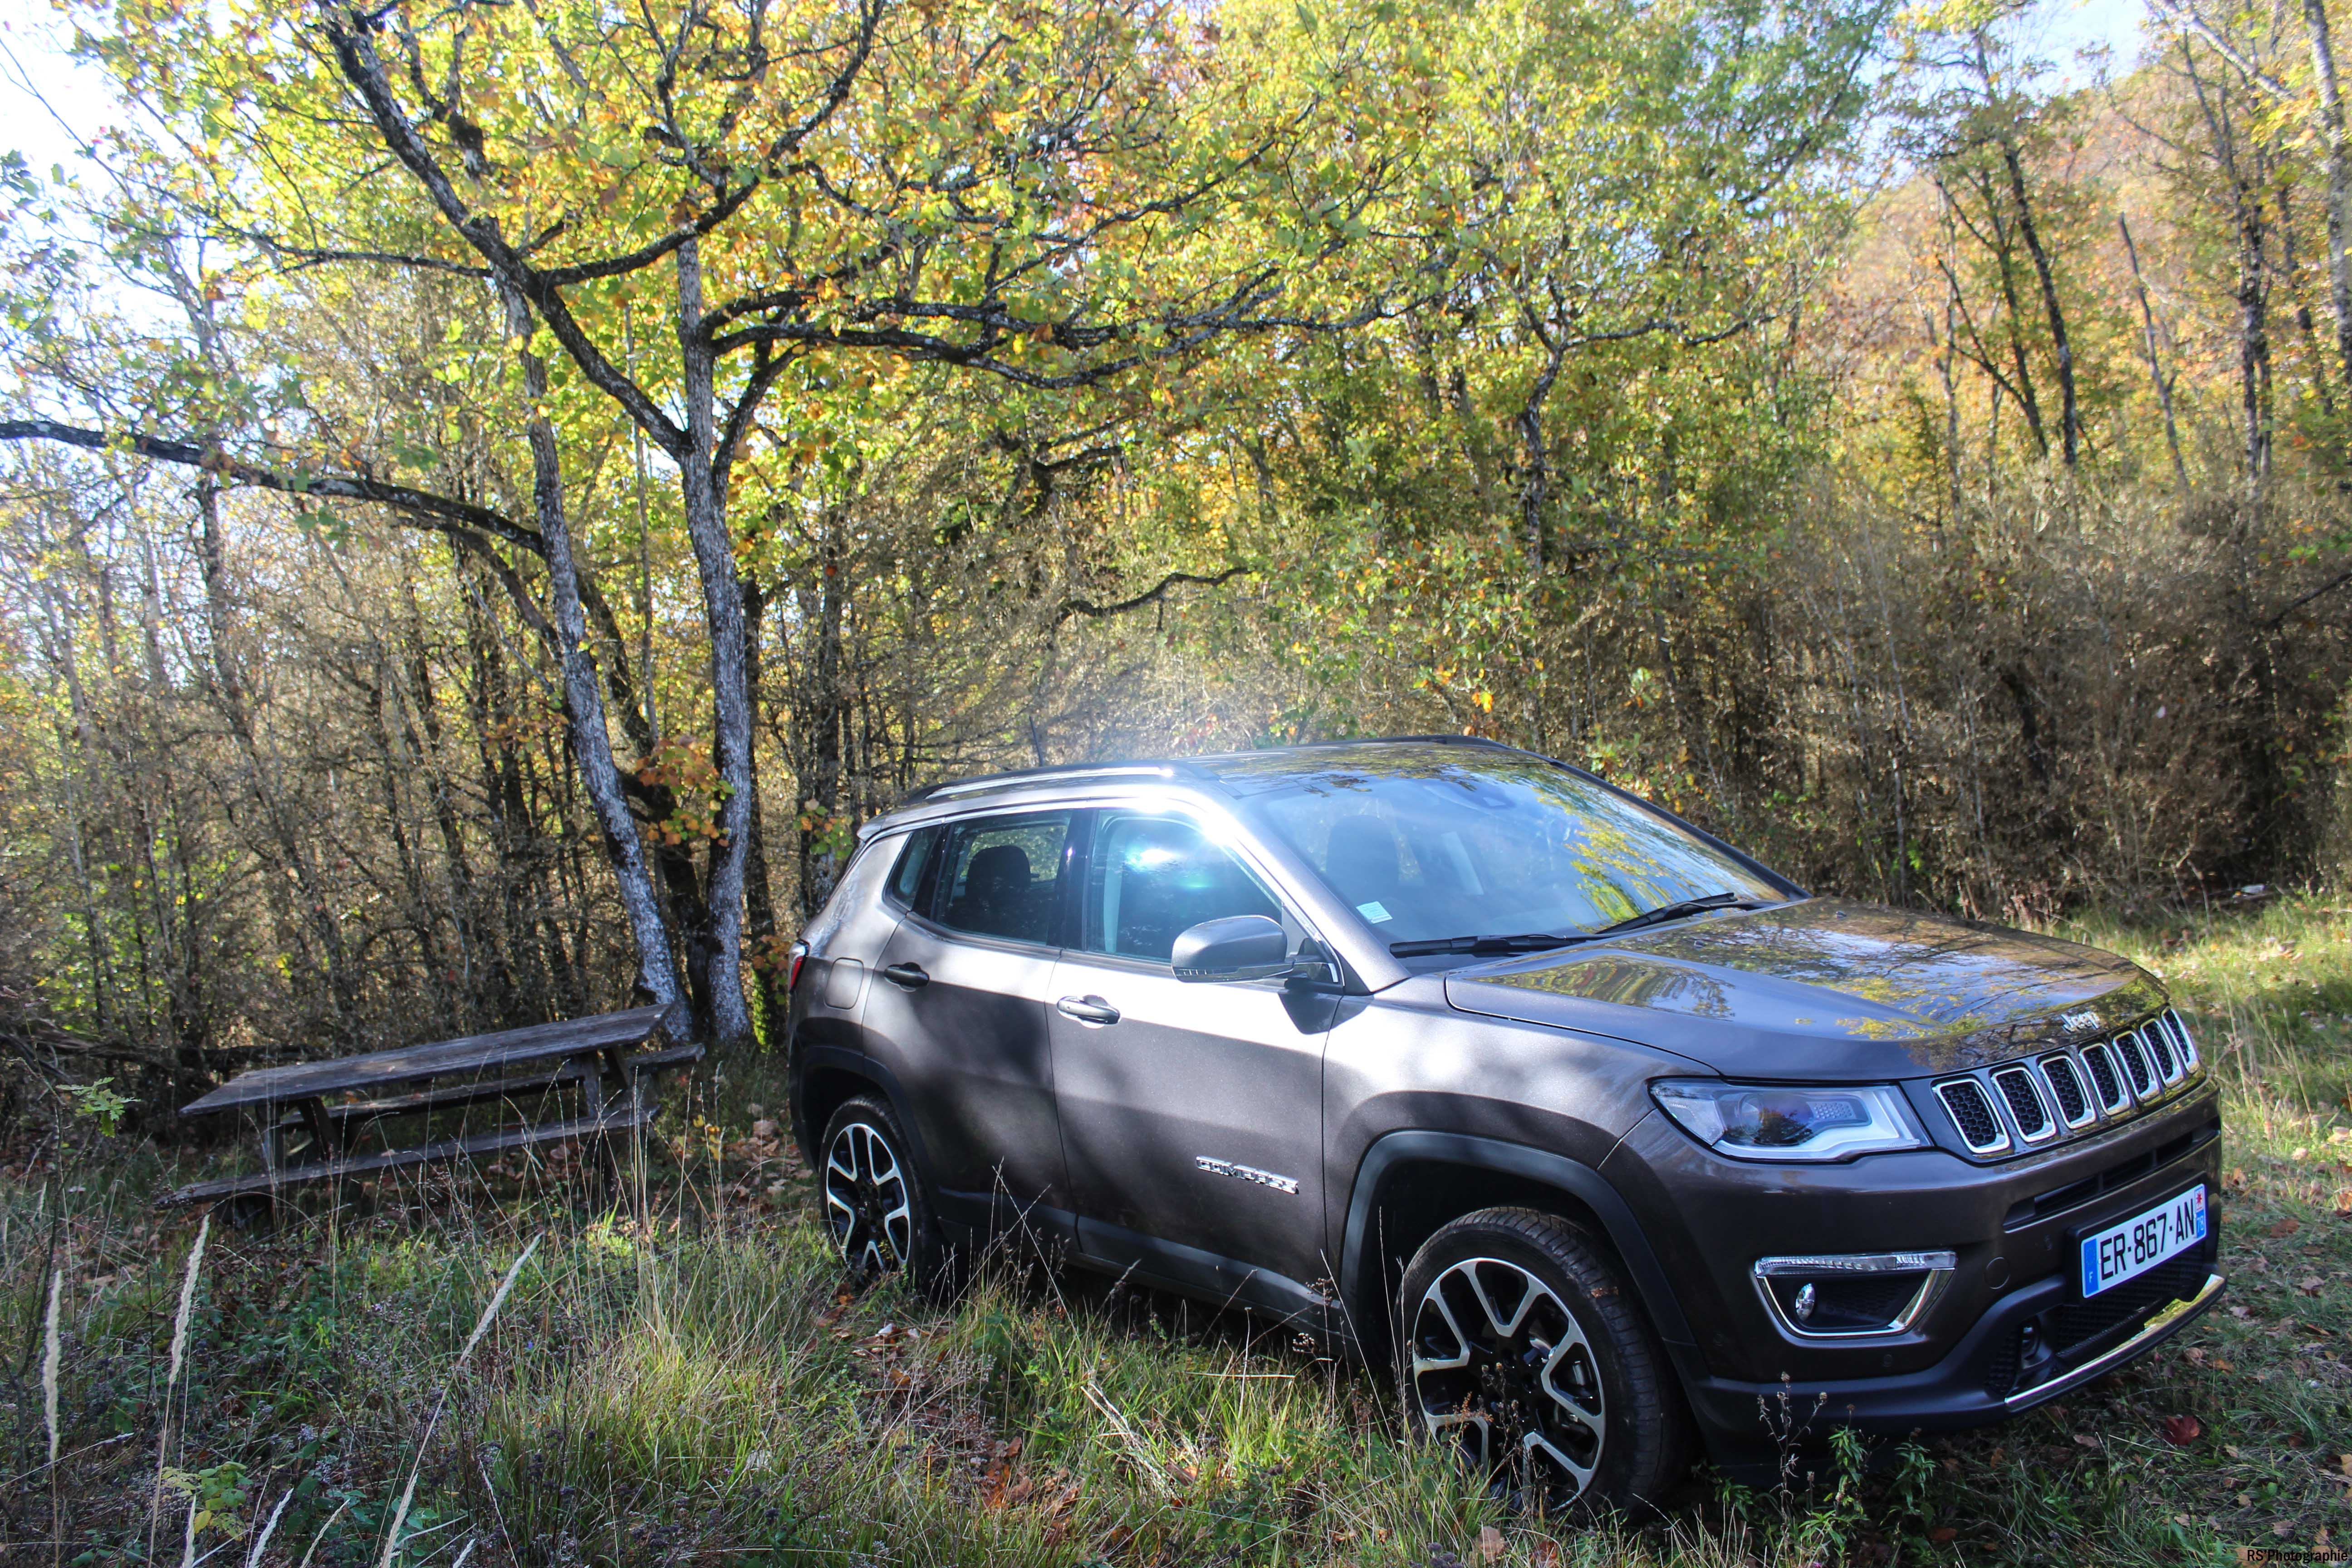 jeepcompass39-jeep-compass-avant-front-Arnaud Demasier-RSPhotographie